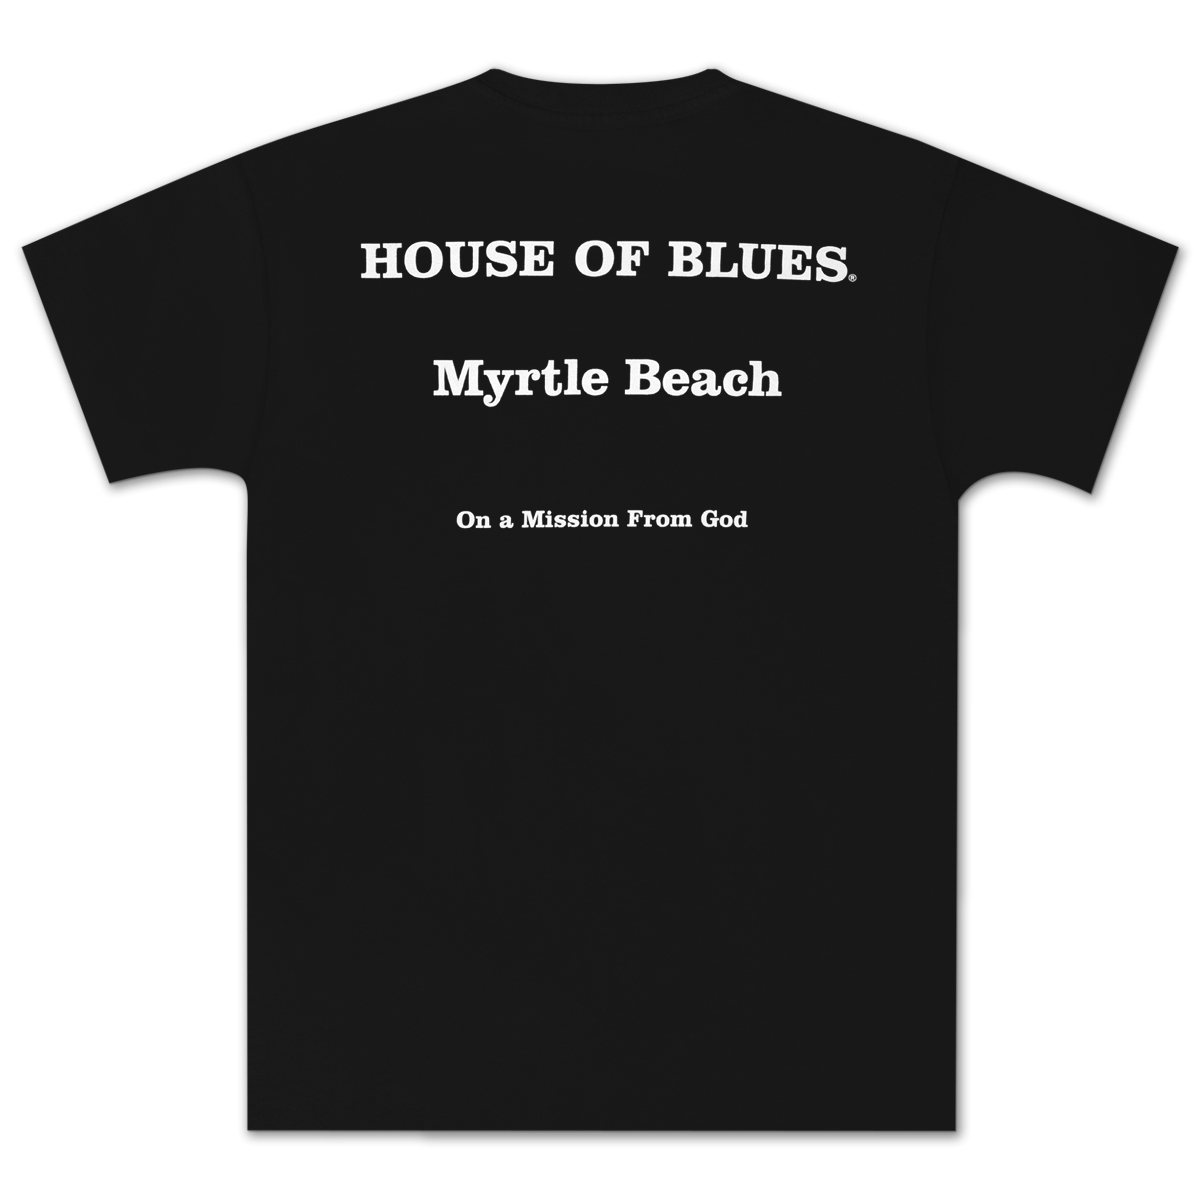 House of Blues Black J&E T-Shirt - Myrtle Beach